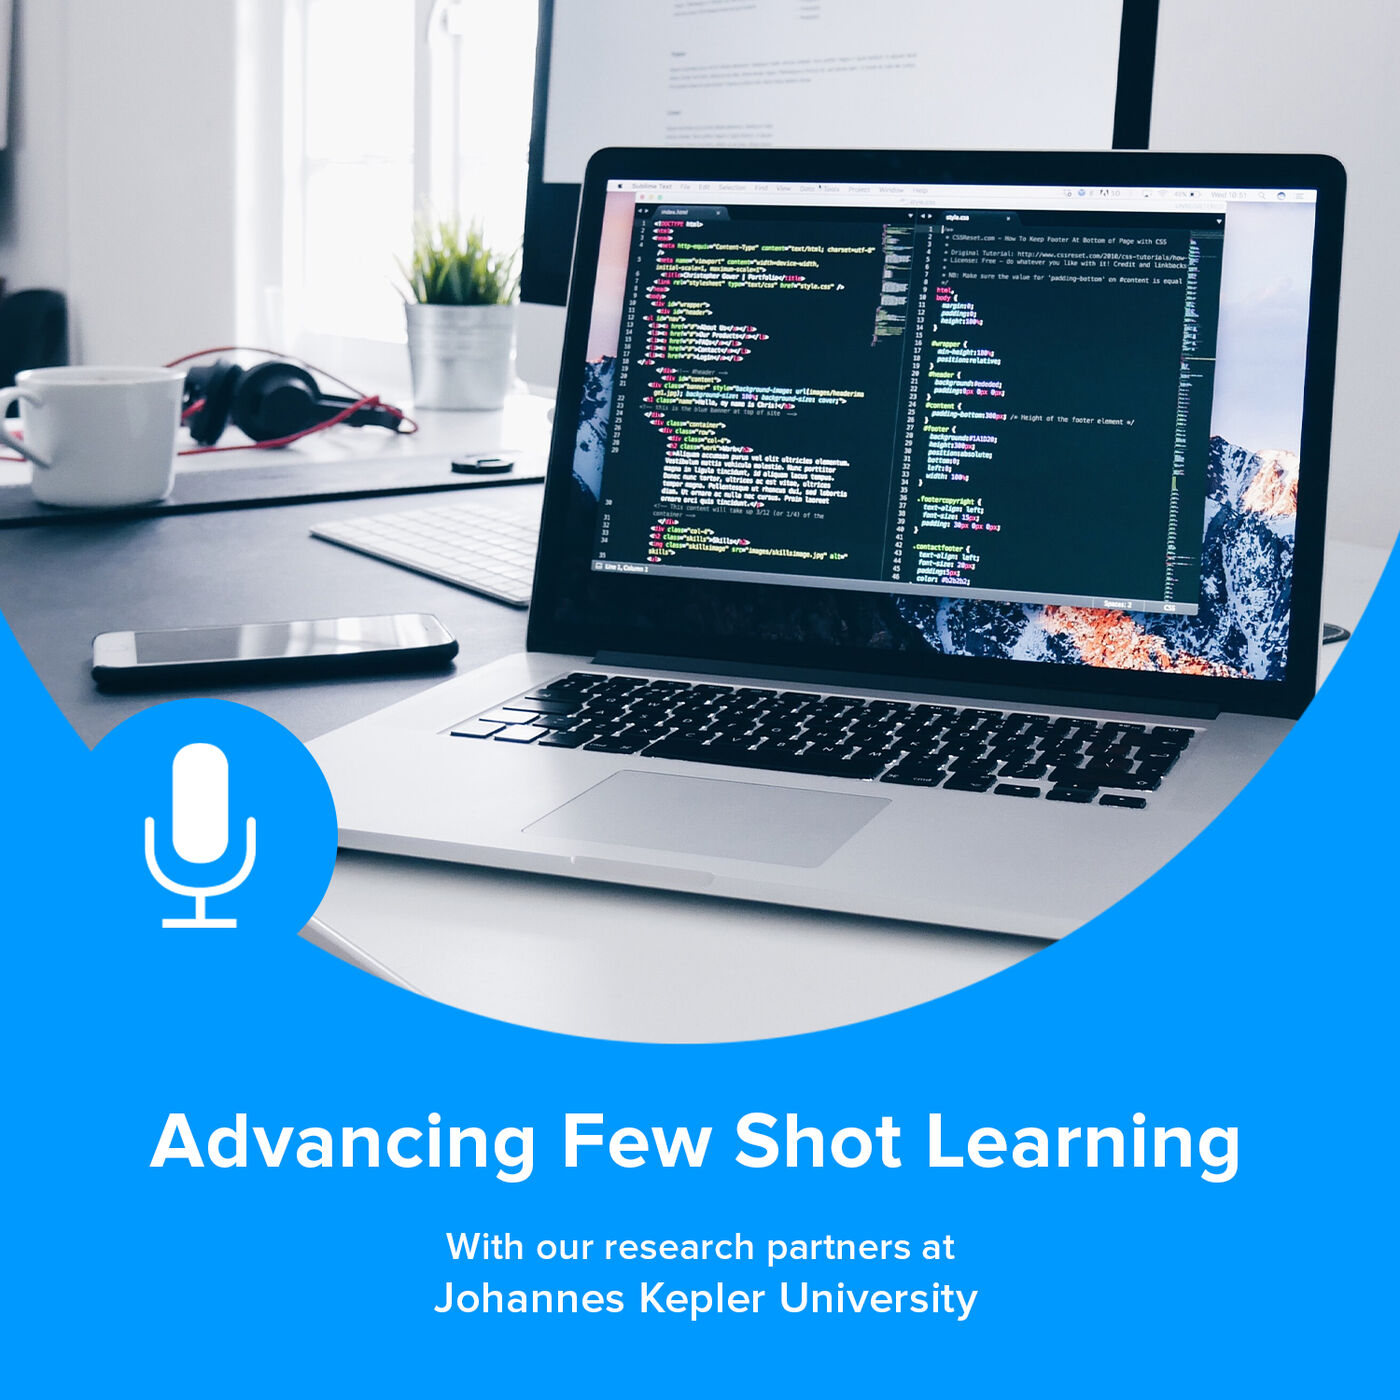 Advancing Few Shot Learning with Johannes Kepler University // Anyline, Anytime